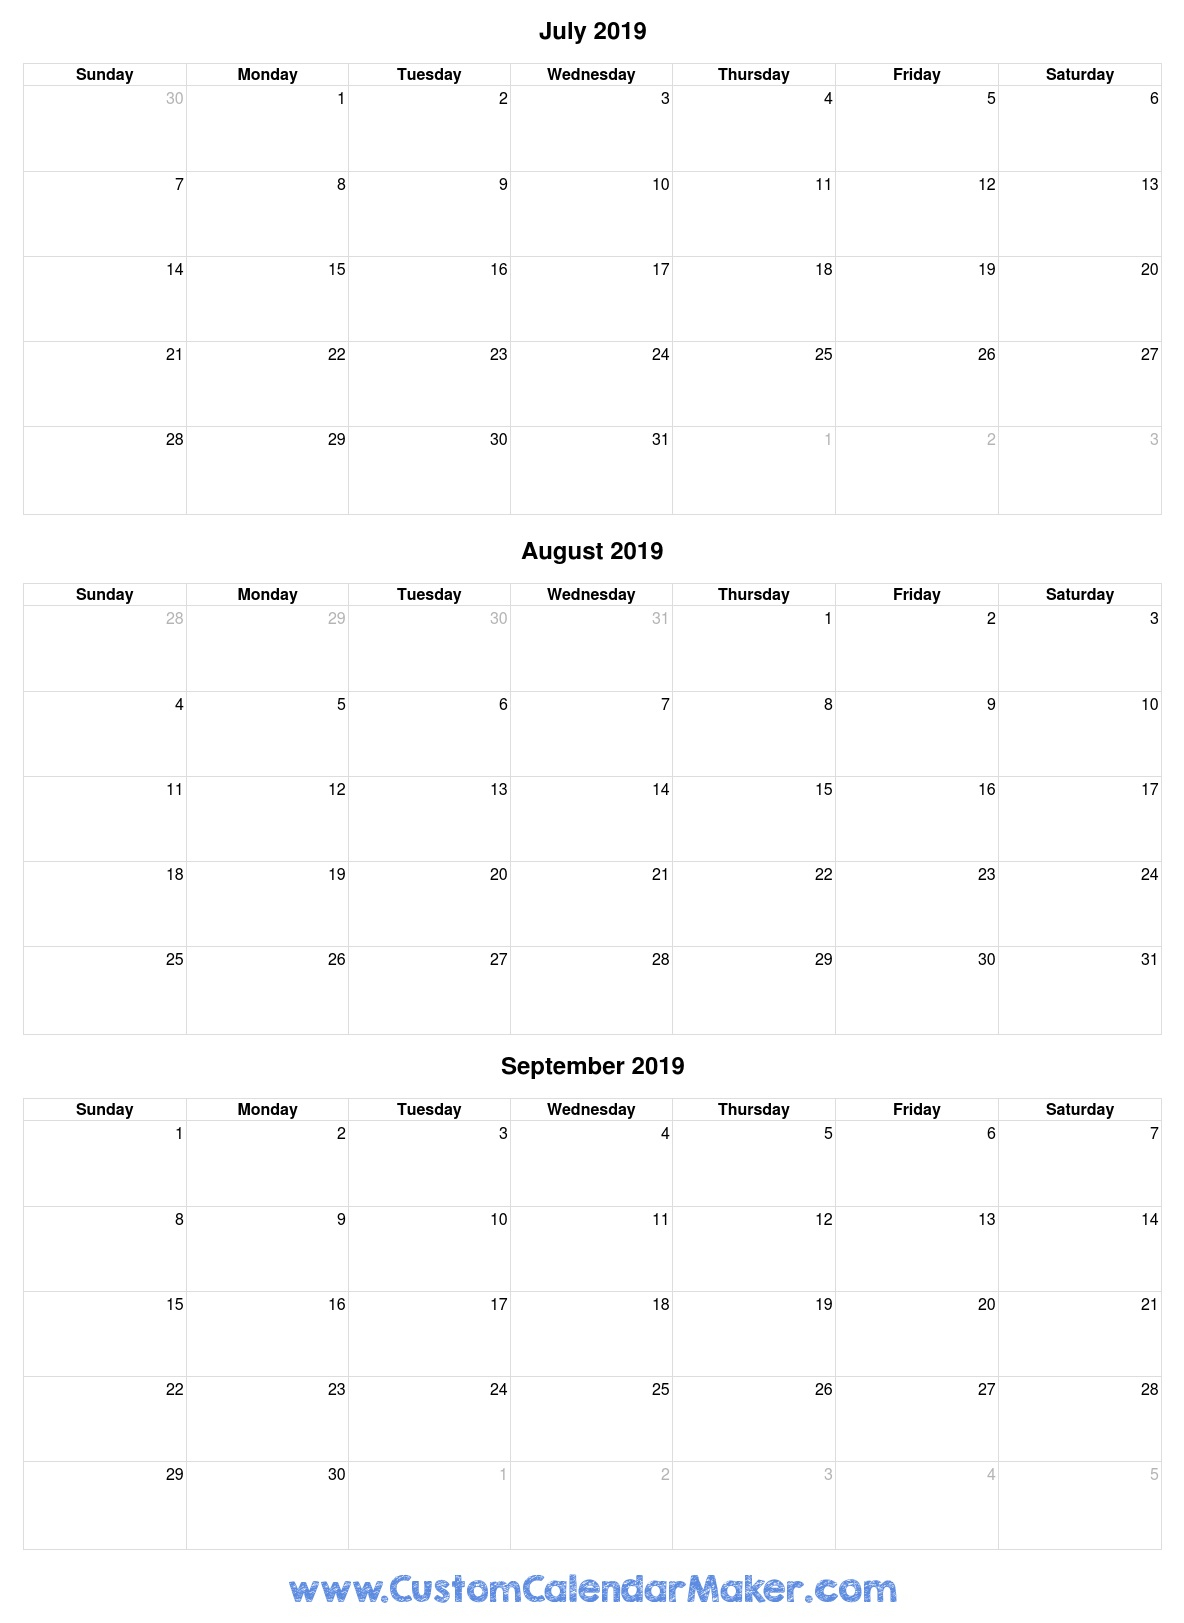 July To September 2019 Calendar - Free Printable Template with September Fill In Calendar 2020